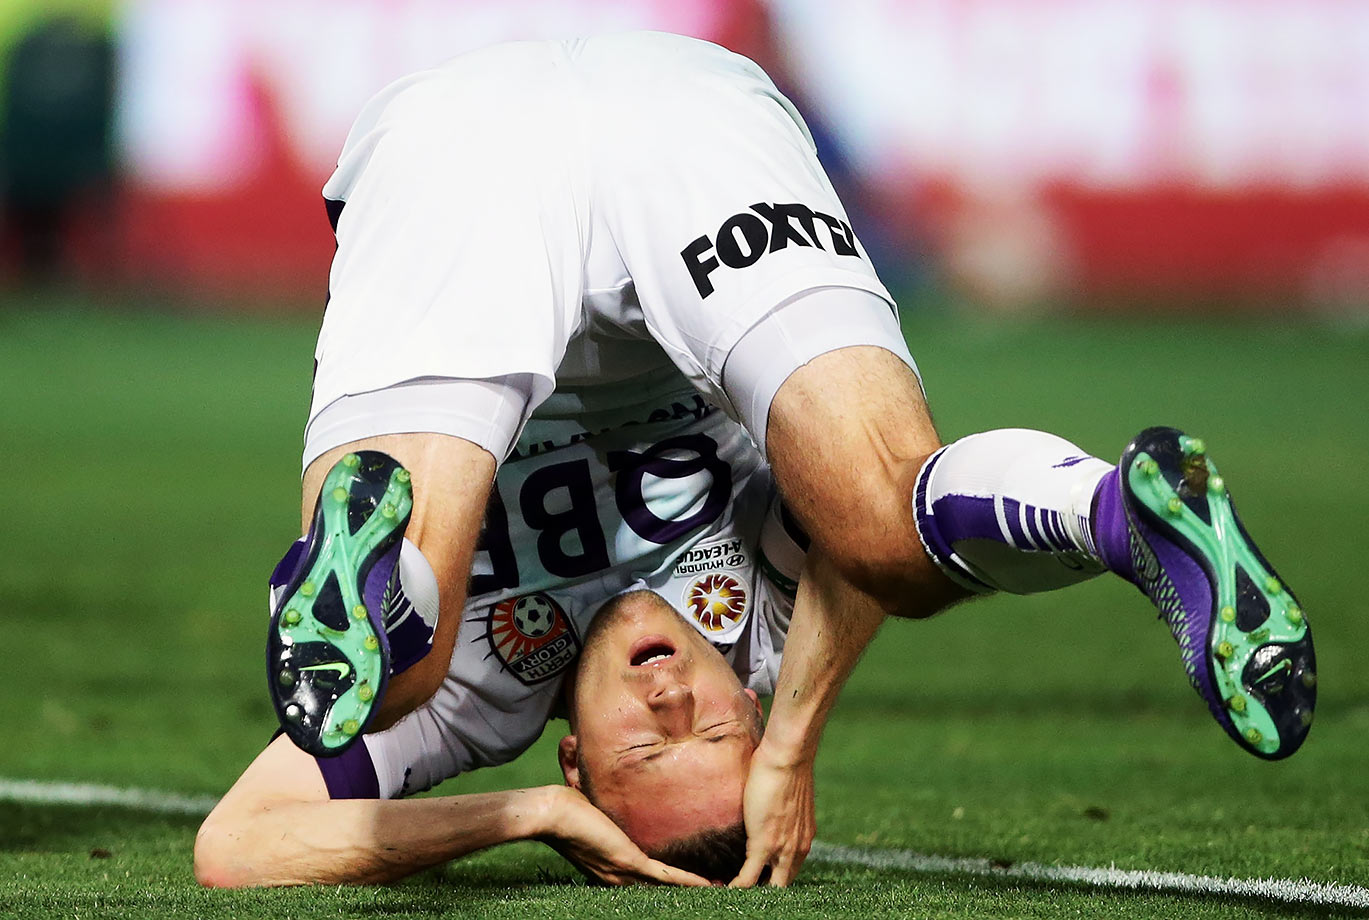 Chris Harold of Perth Glory falls over backwards and reacts after a missed opportunity on goal during the round 21 A-League match against the Western Sydney Wanderers in Sydney, Australia.